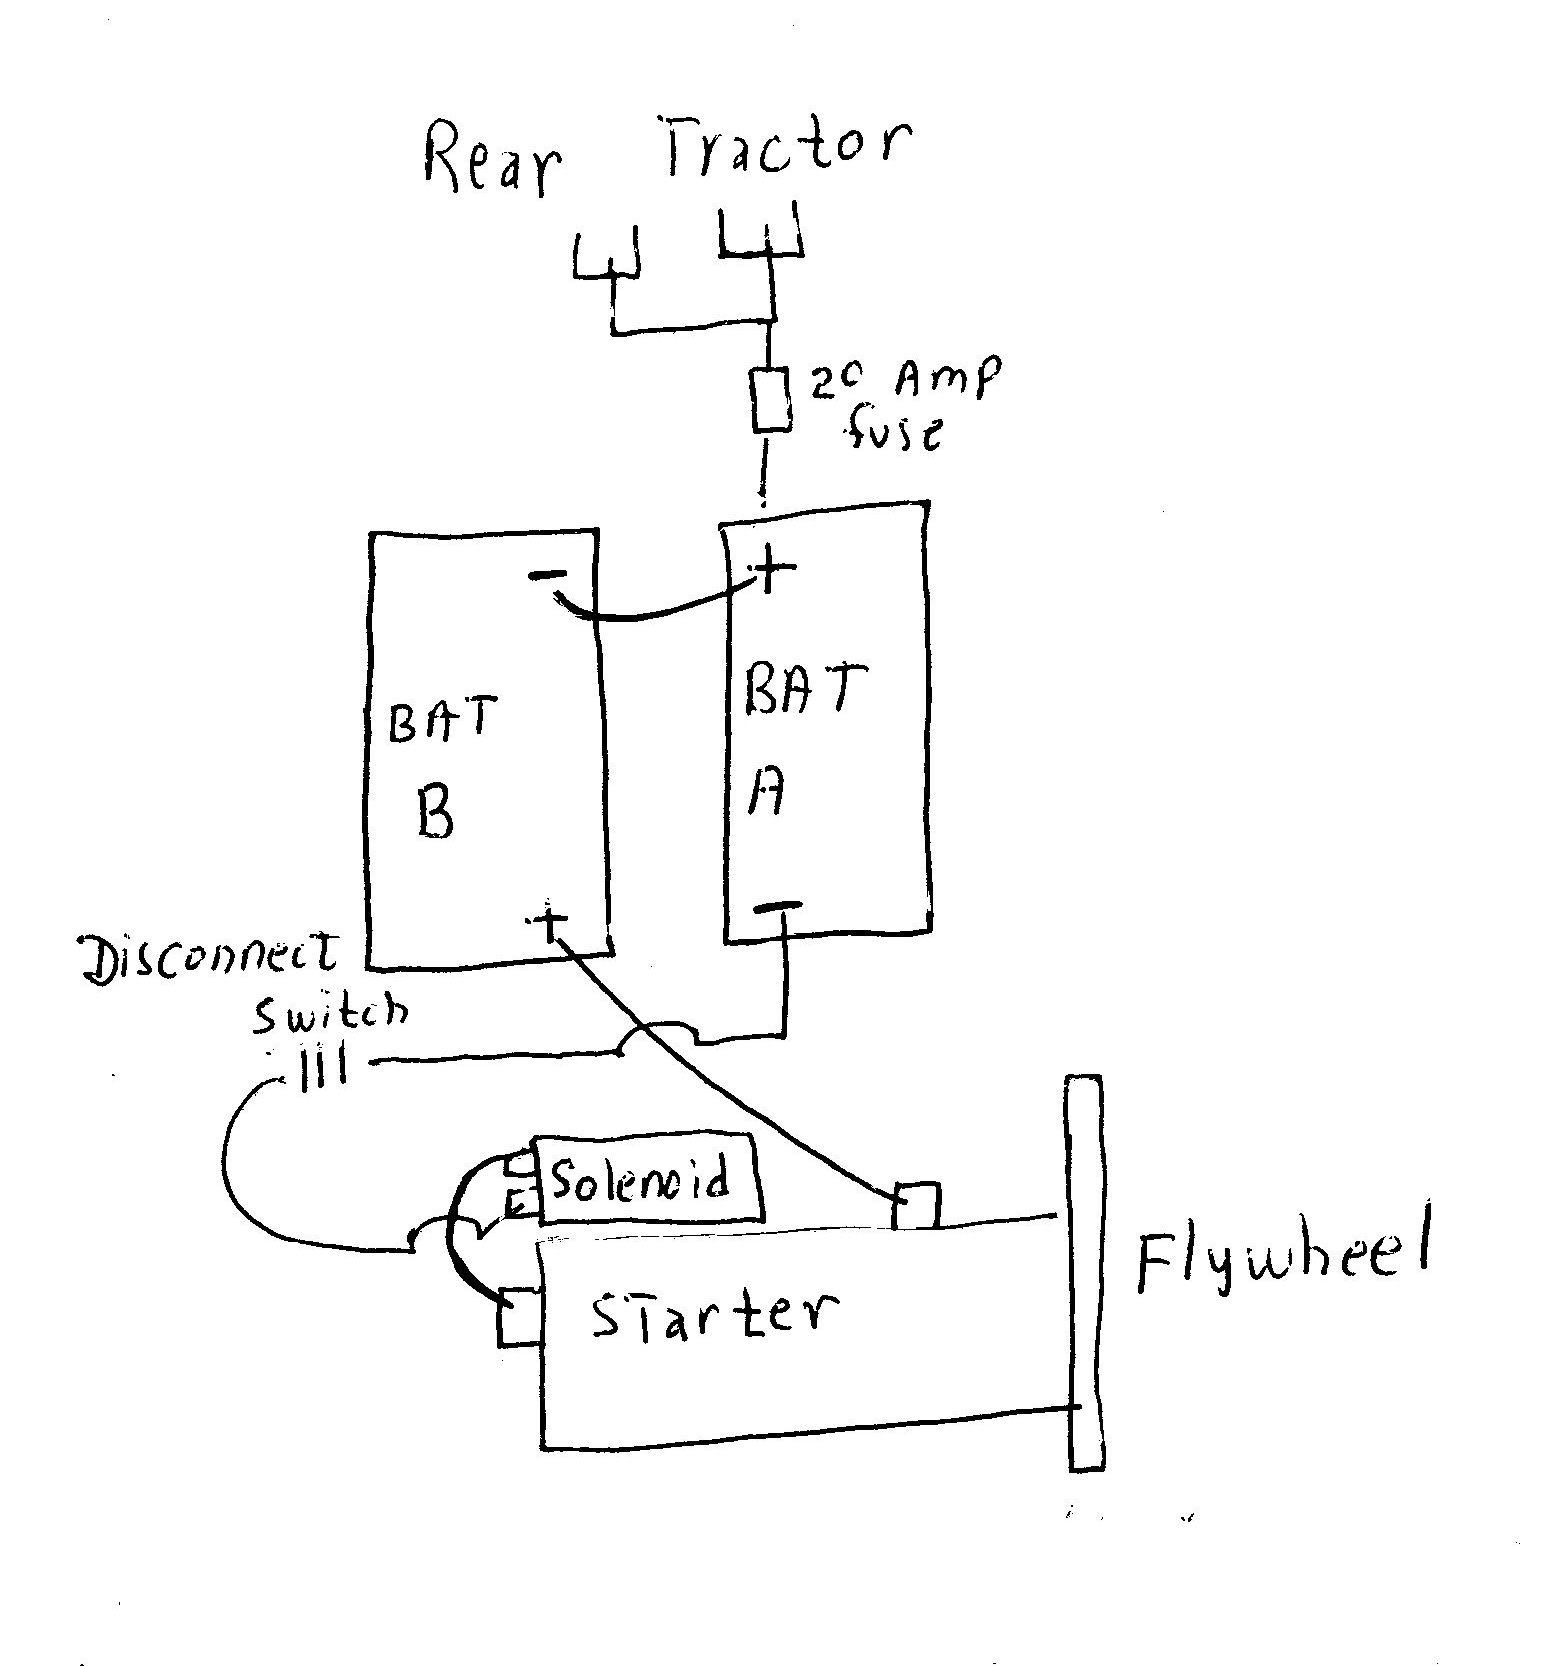 battery_hookup the john deere 24 volt electrical system explained john deere 2550 wiring diagram pdf at mifinder.co